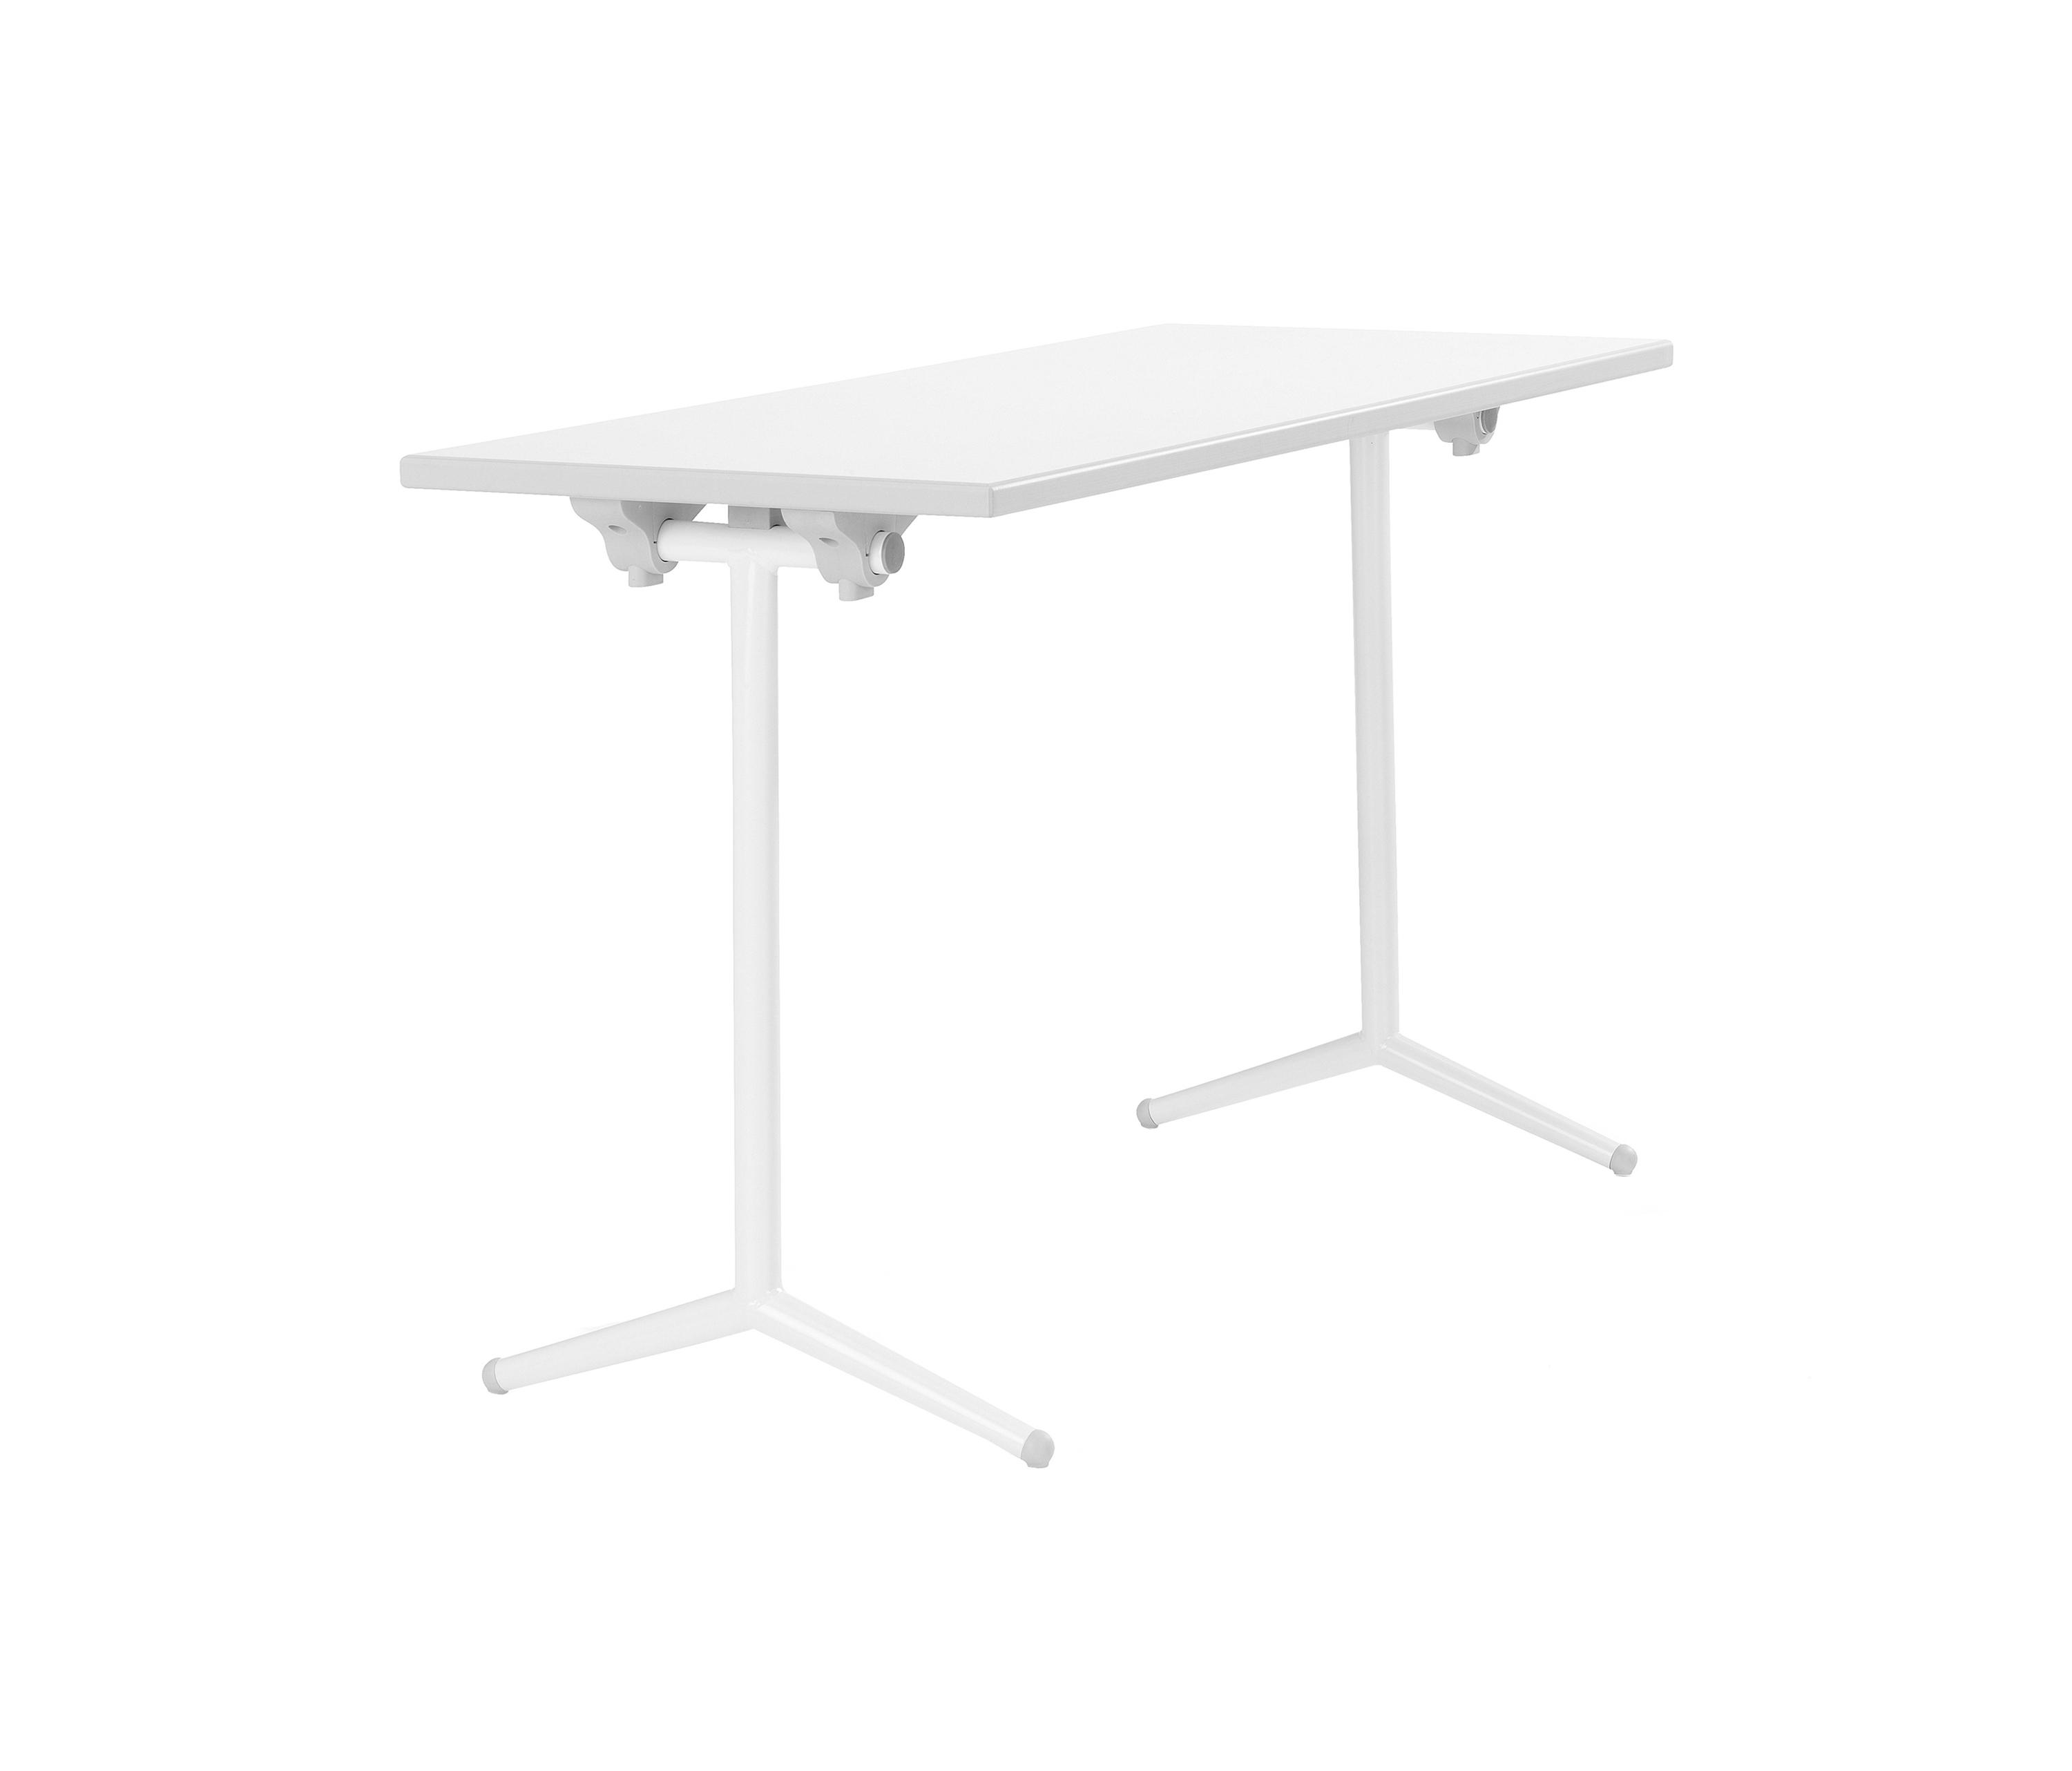 QUICKLY T LEG Multipurpose tables from Lammhults Architonic